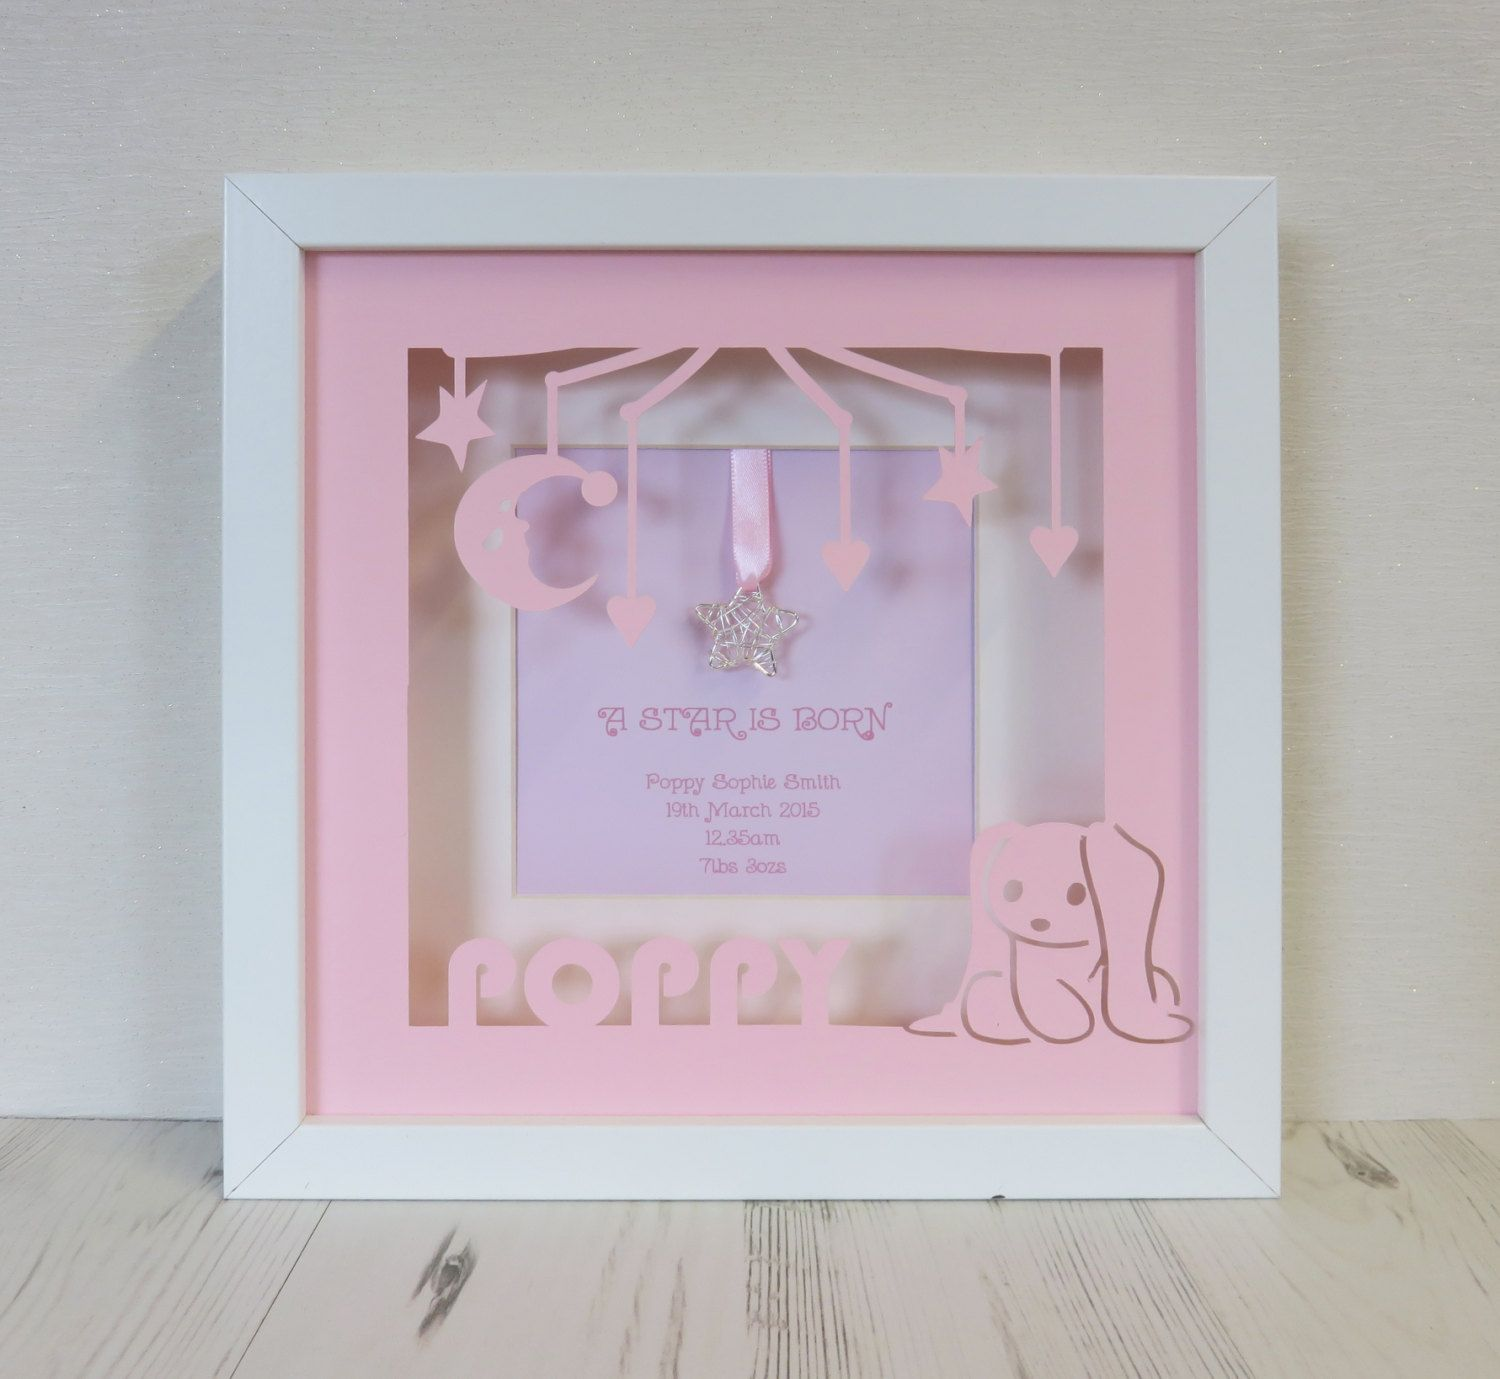 Personalised butterfly heart printed paper cut box frame art personalised new baby girl a star is born paper cut border box frame art jeuxipadfo Images